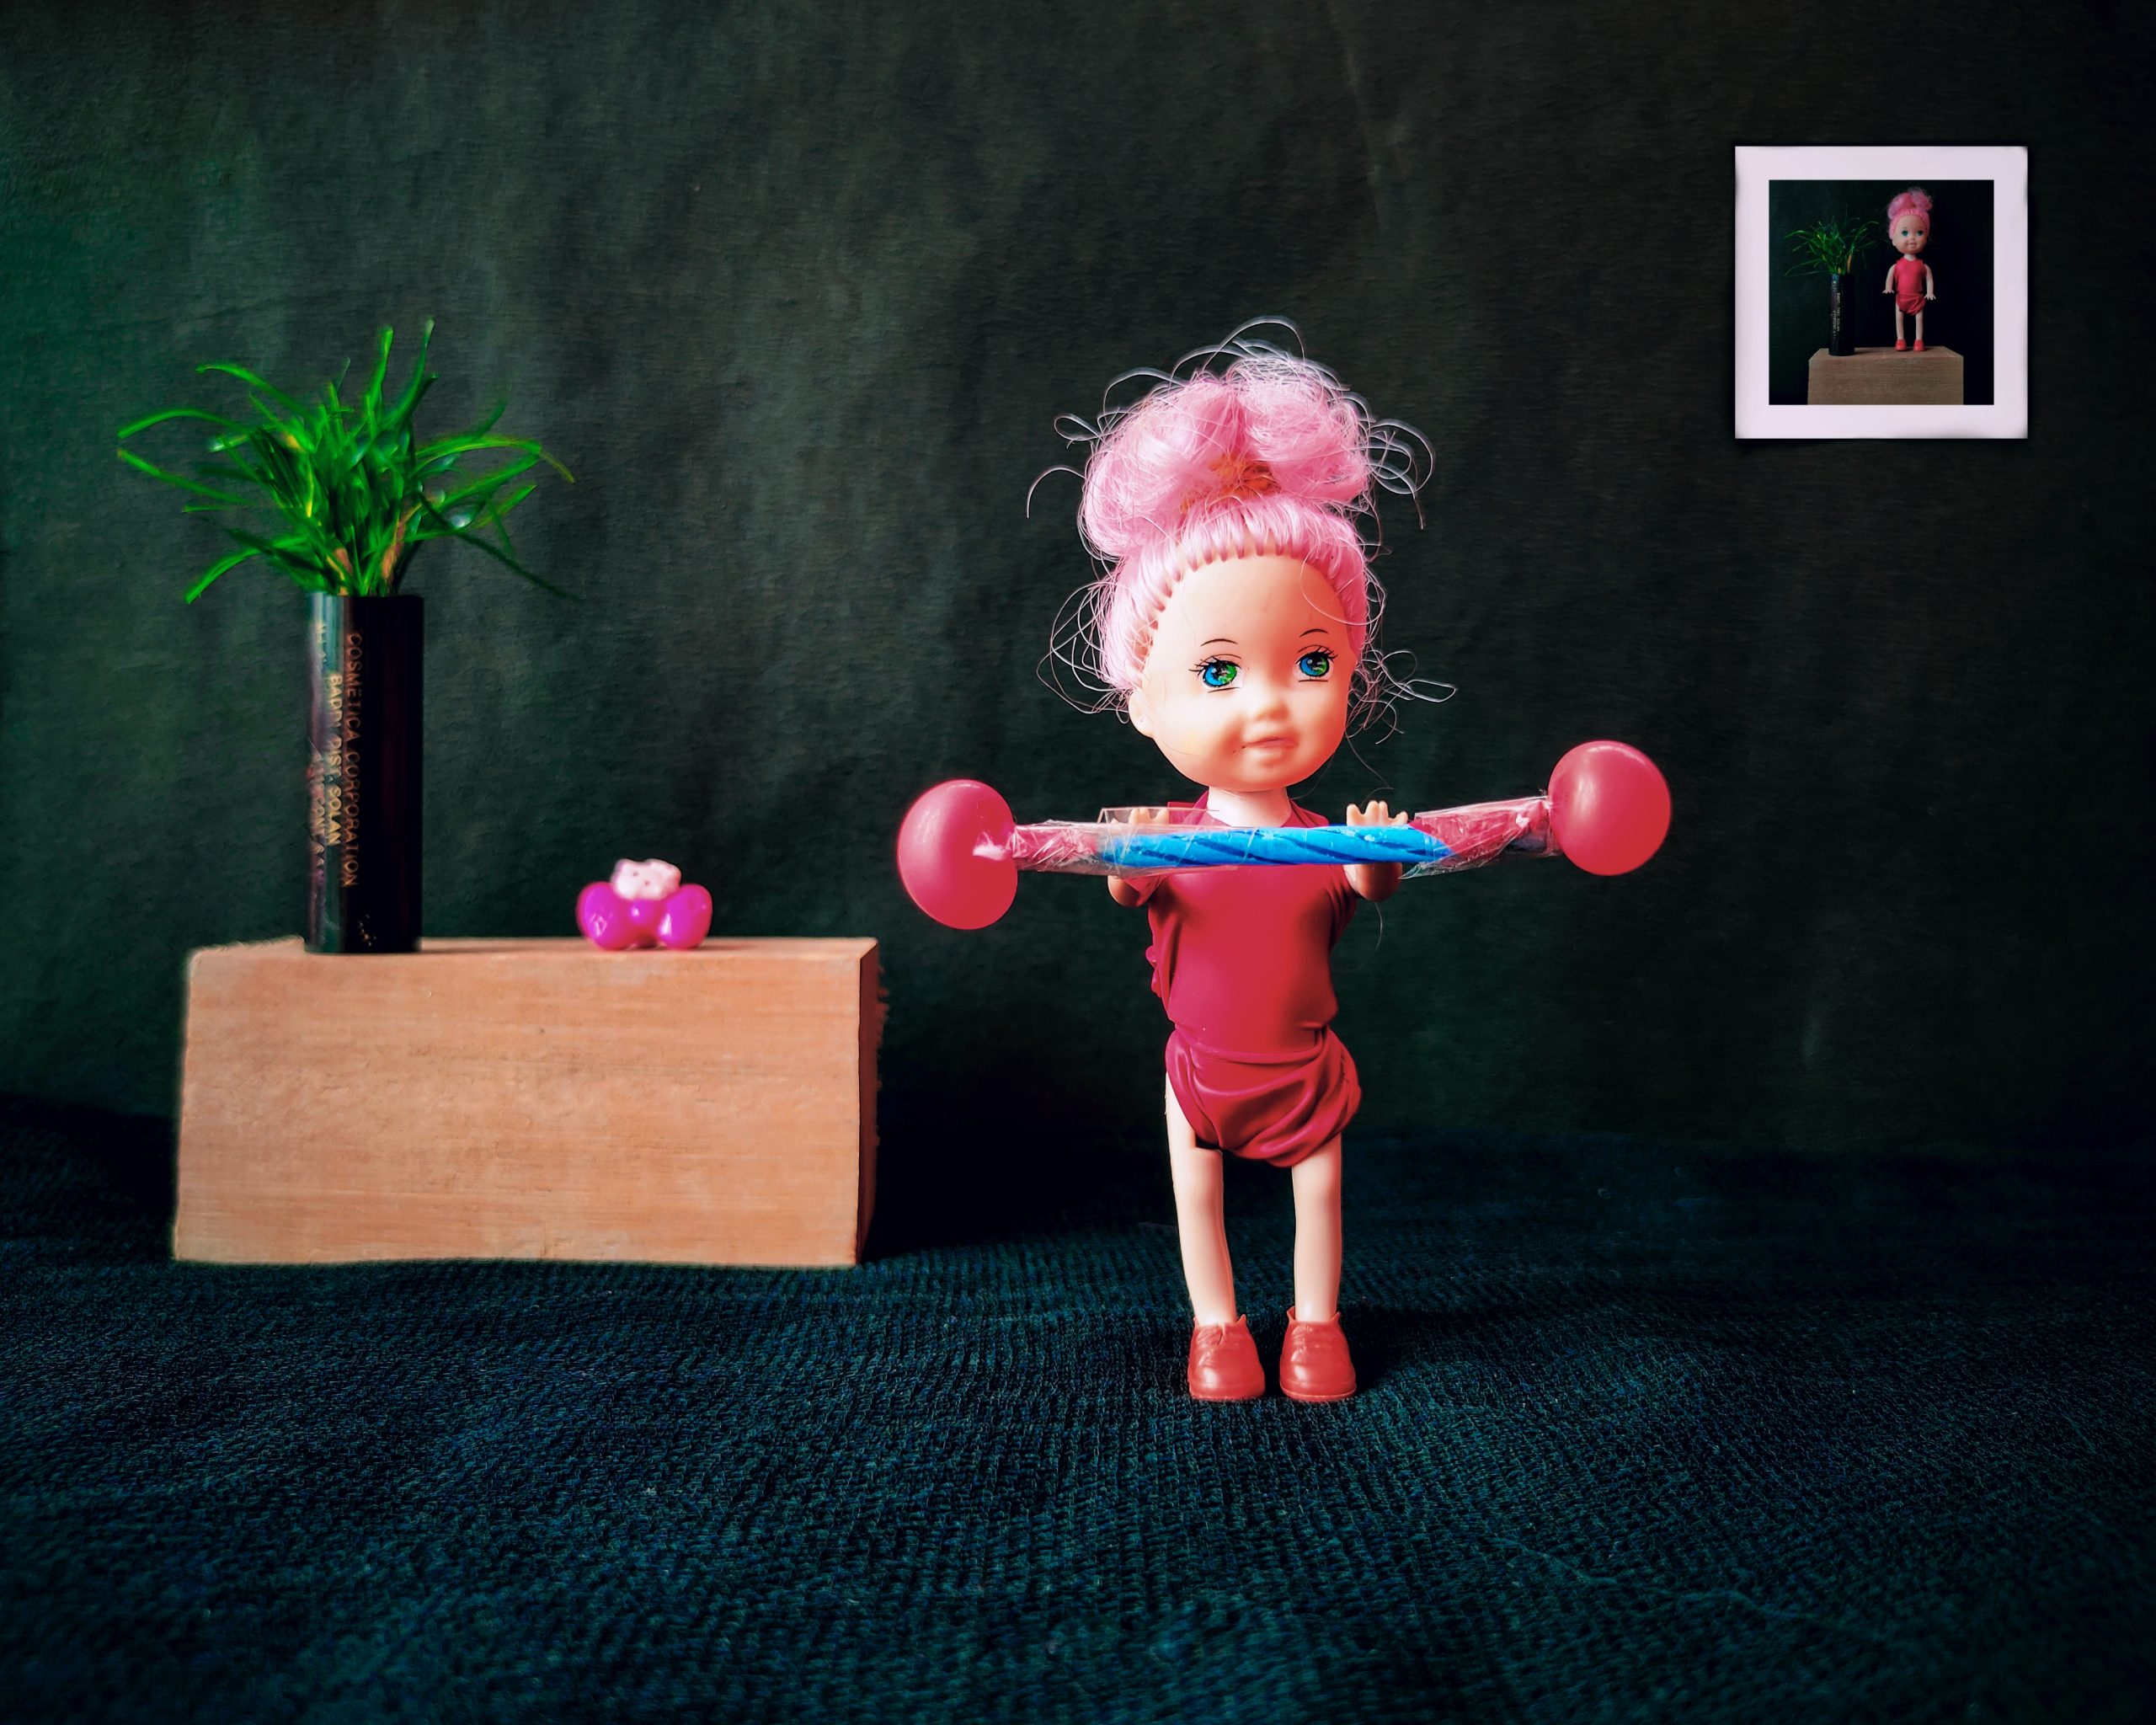 A doll lifting weight